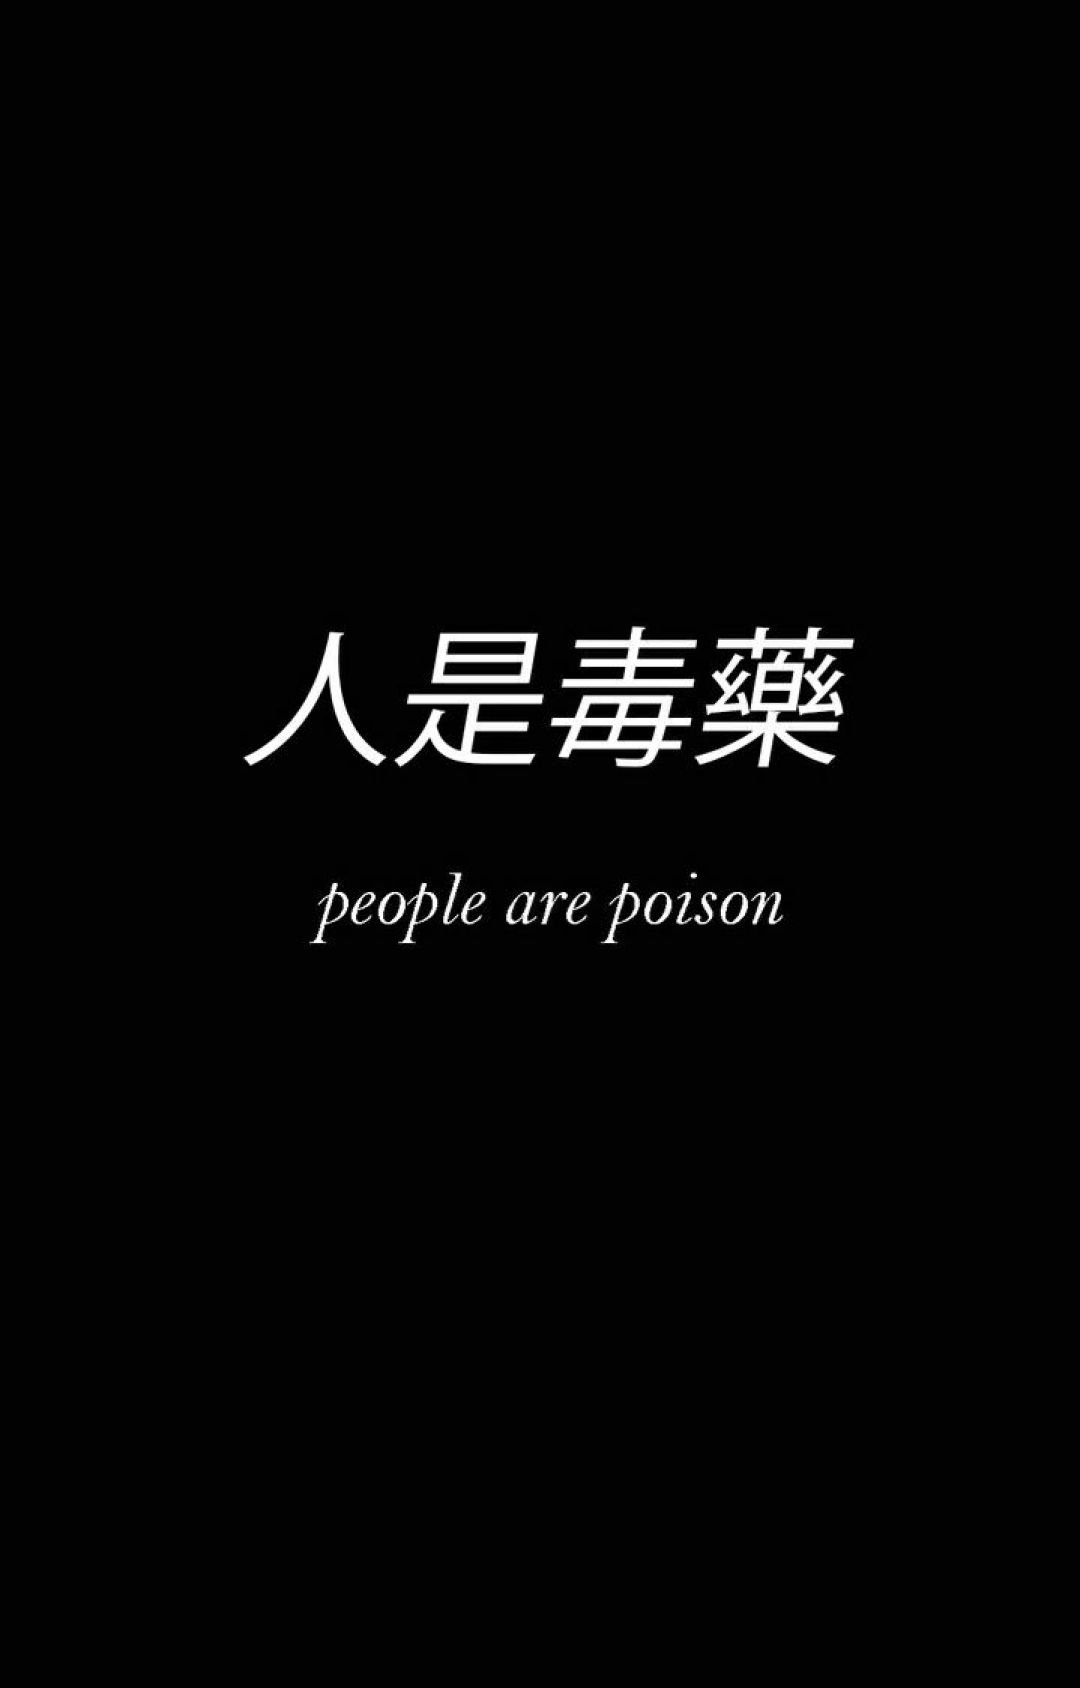 [15] Japanese Aesthetic Quotes   Android iPhone Desktop HD 1080x1688